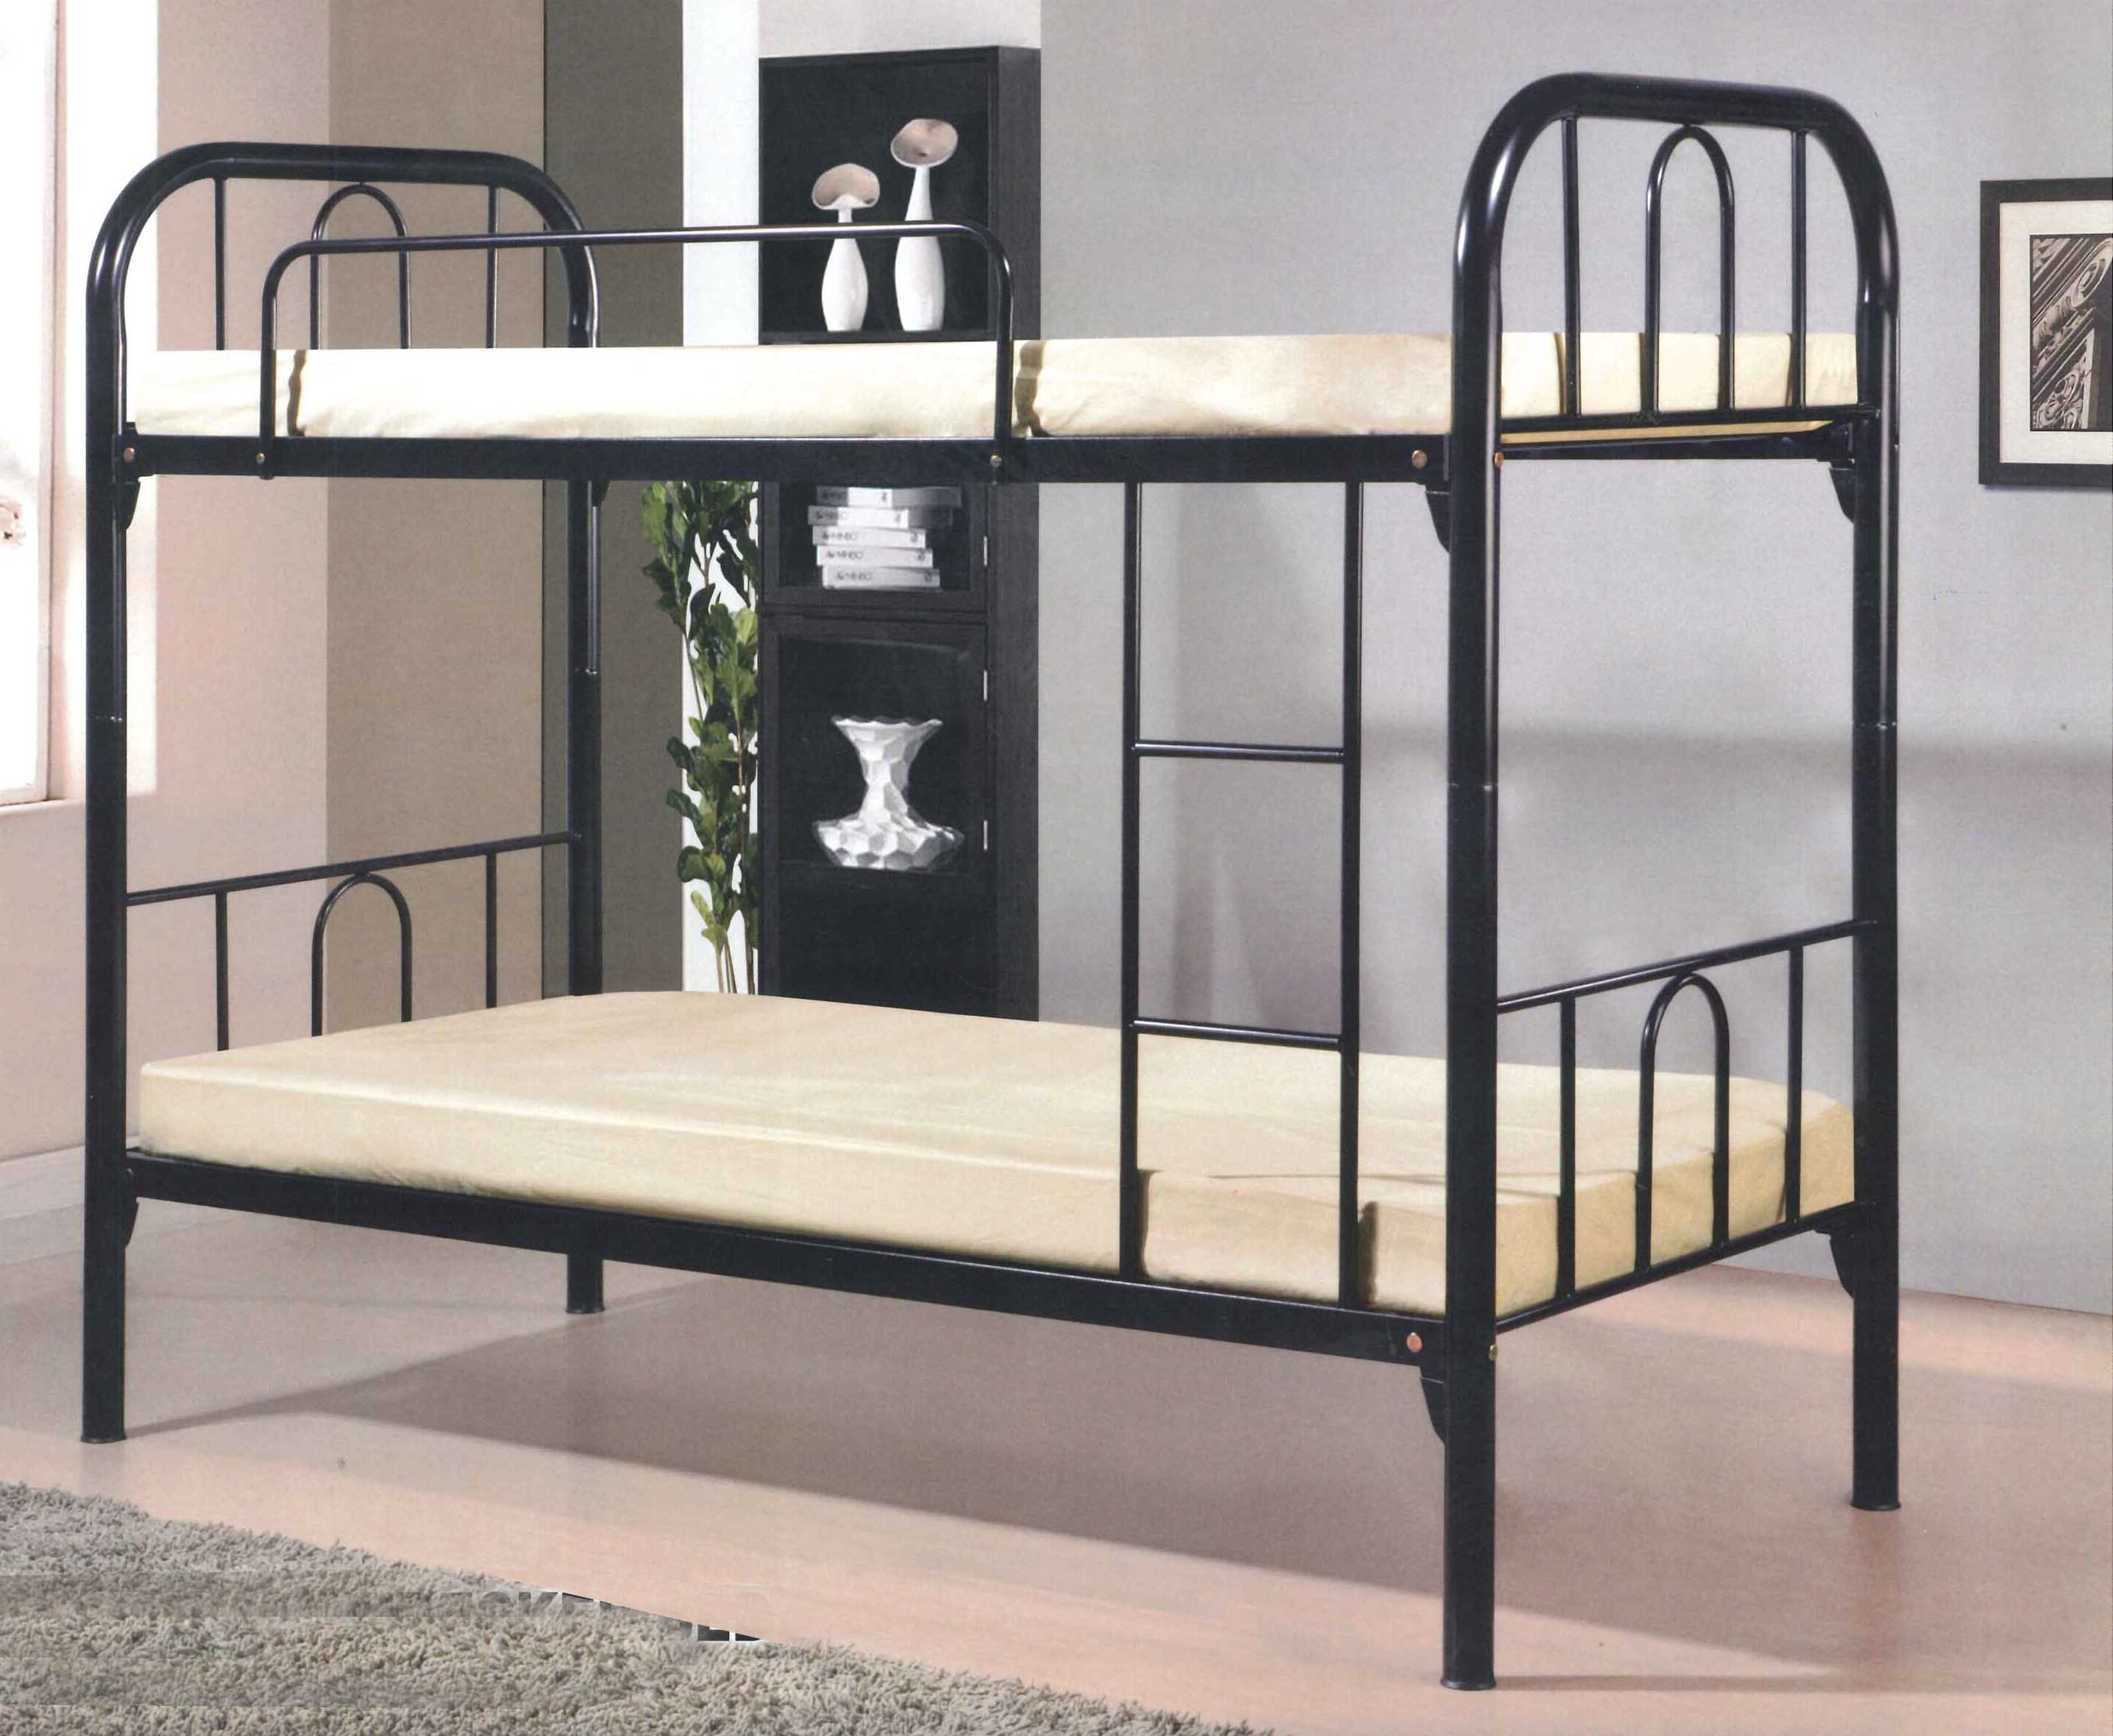 Safari Double Deck Metal Bed | Furniture & Home Décor | FortyTwo